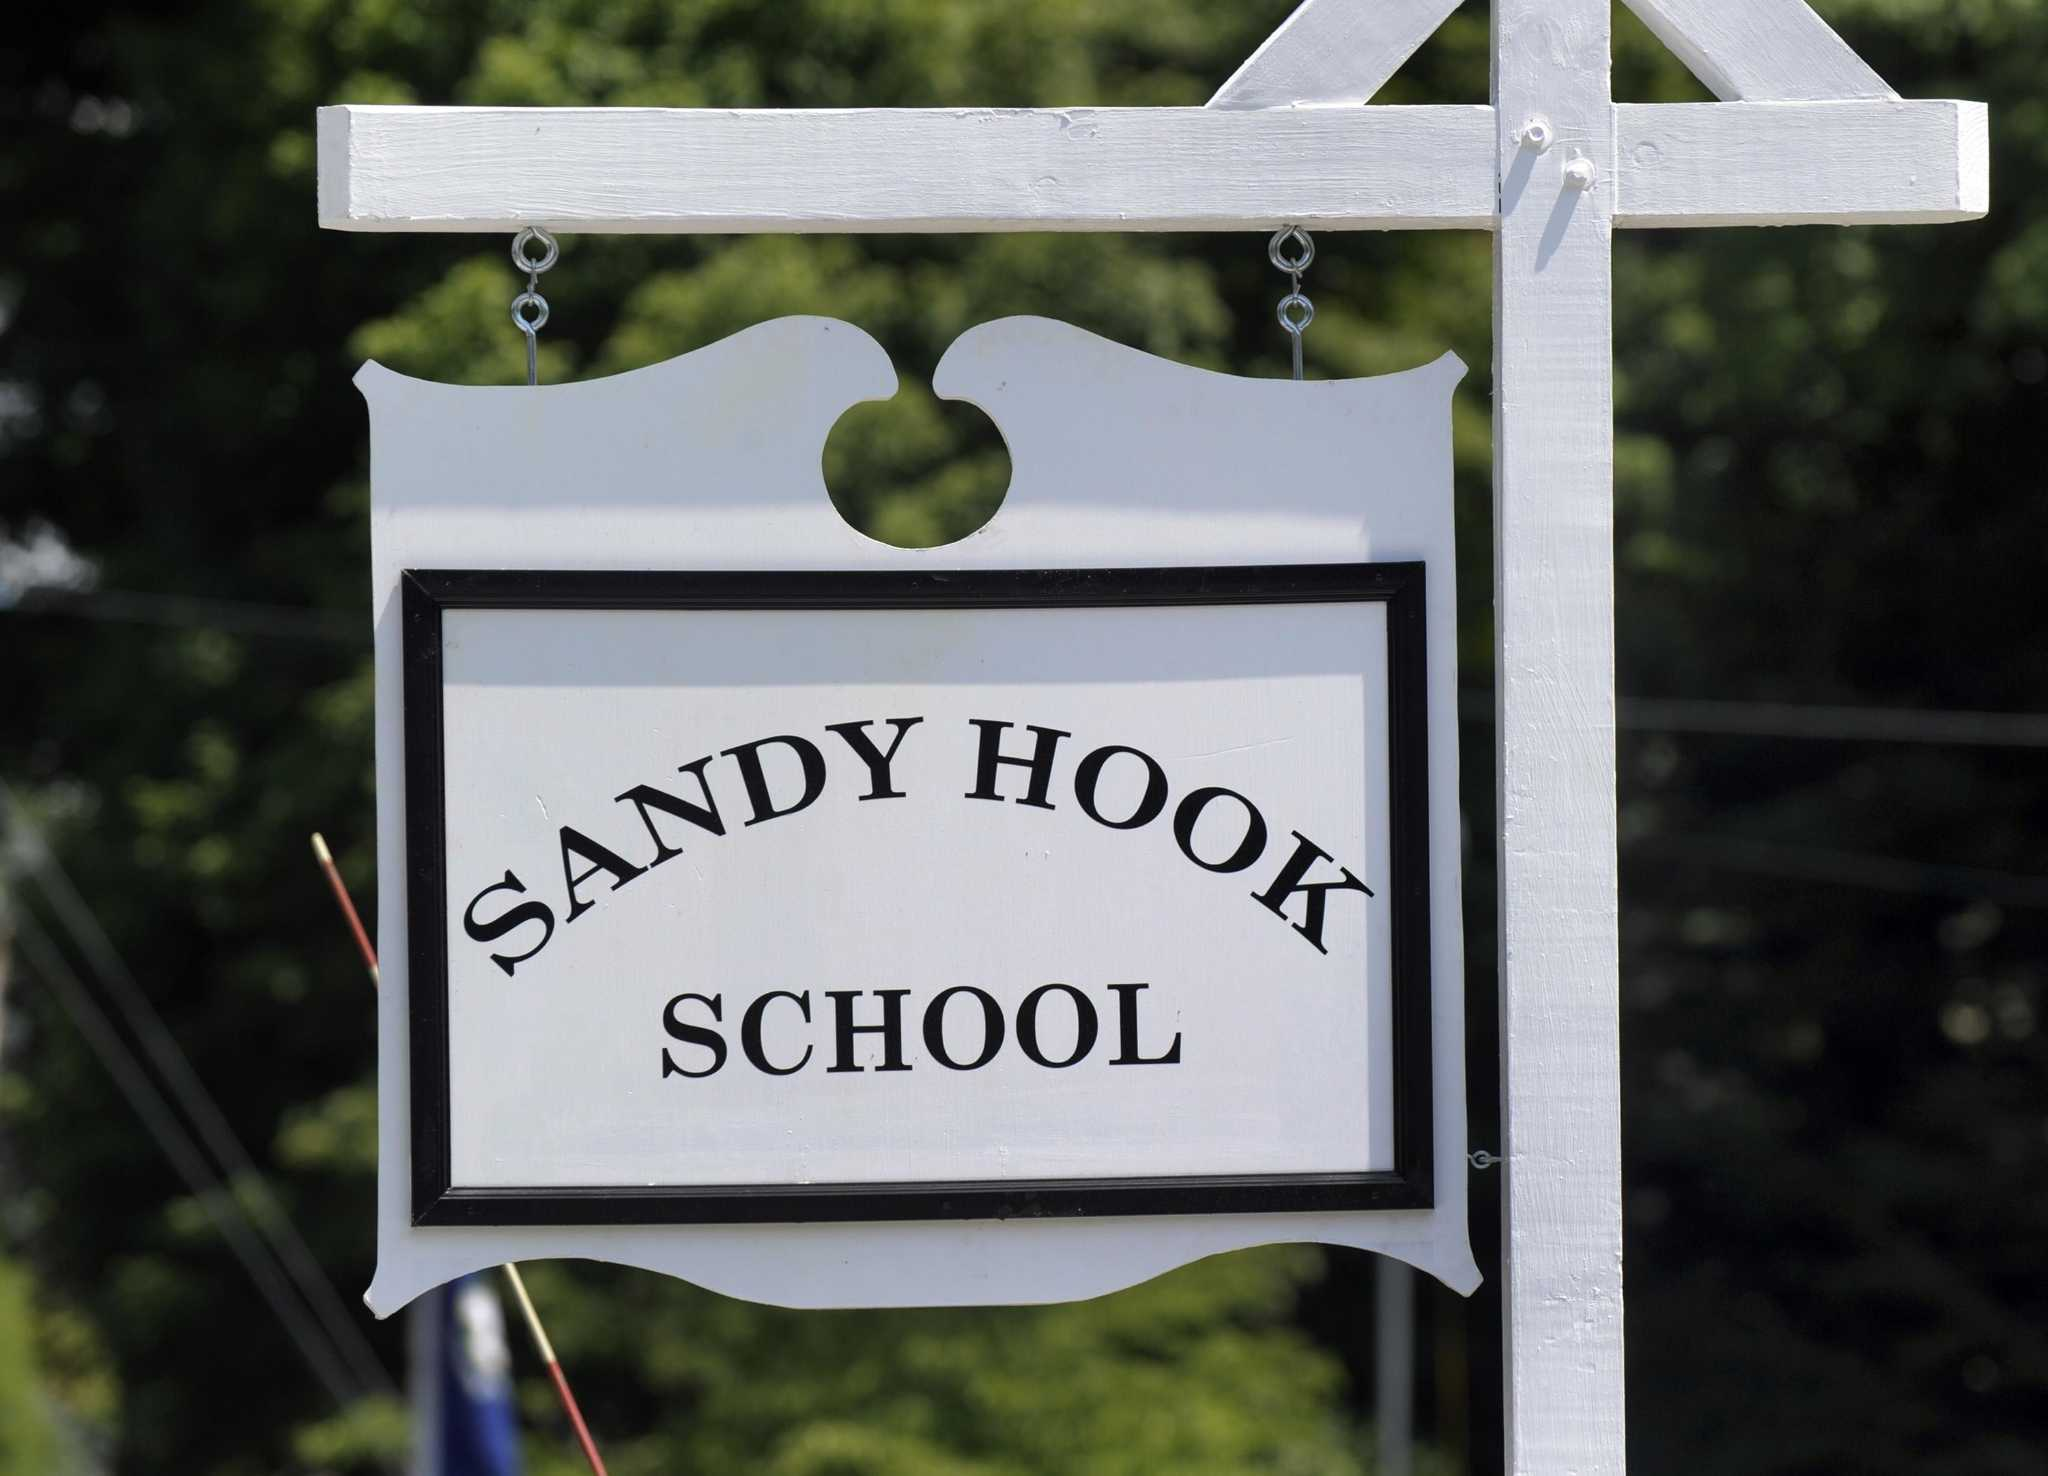 sandy hook 5k sign up 0 bed ∙ 8381 sandy hook dr sign up log in sign up members homes similar to 8381 sandy hook dr are listed between $5k to $1,950k at an average of $325.